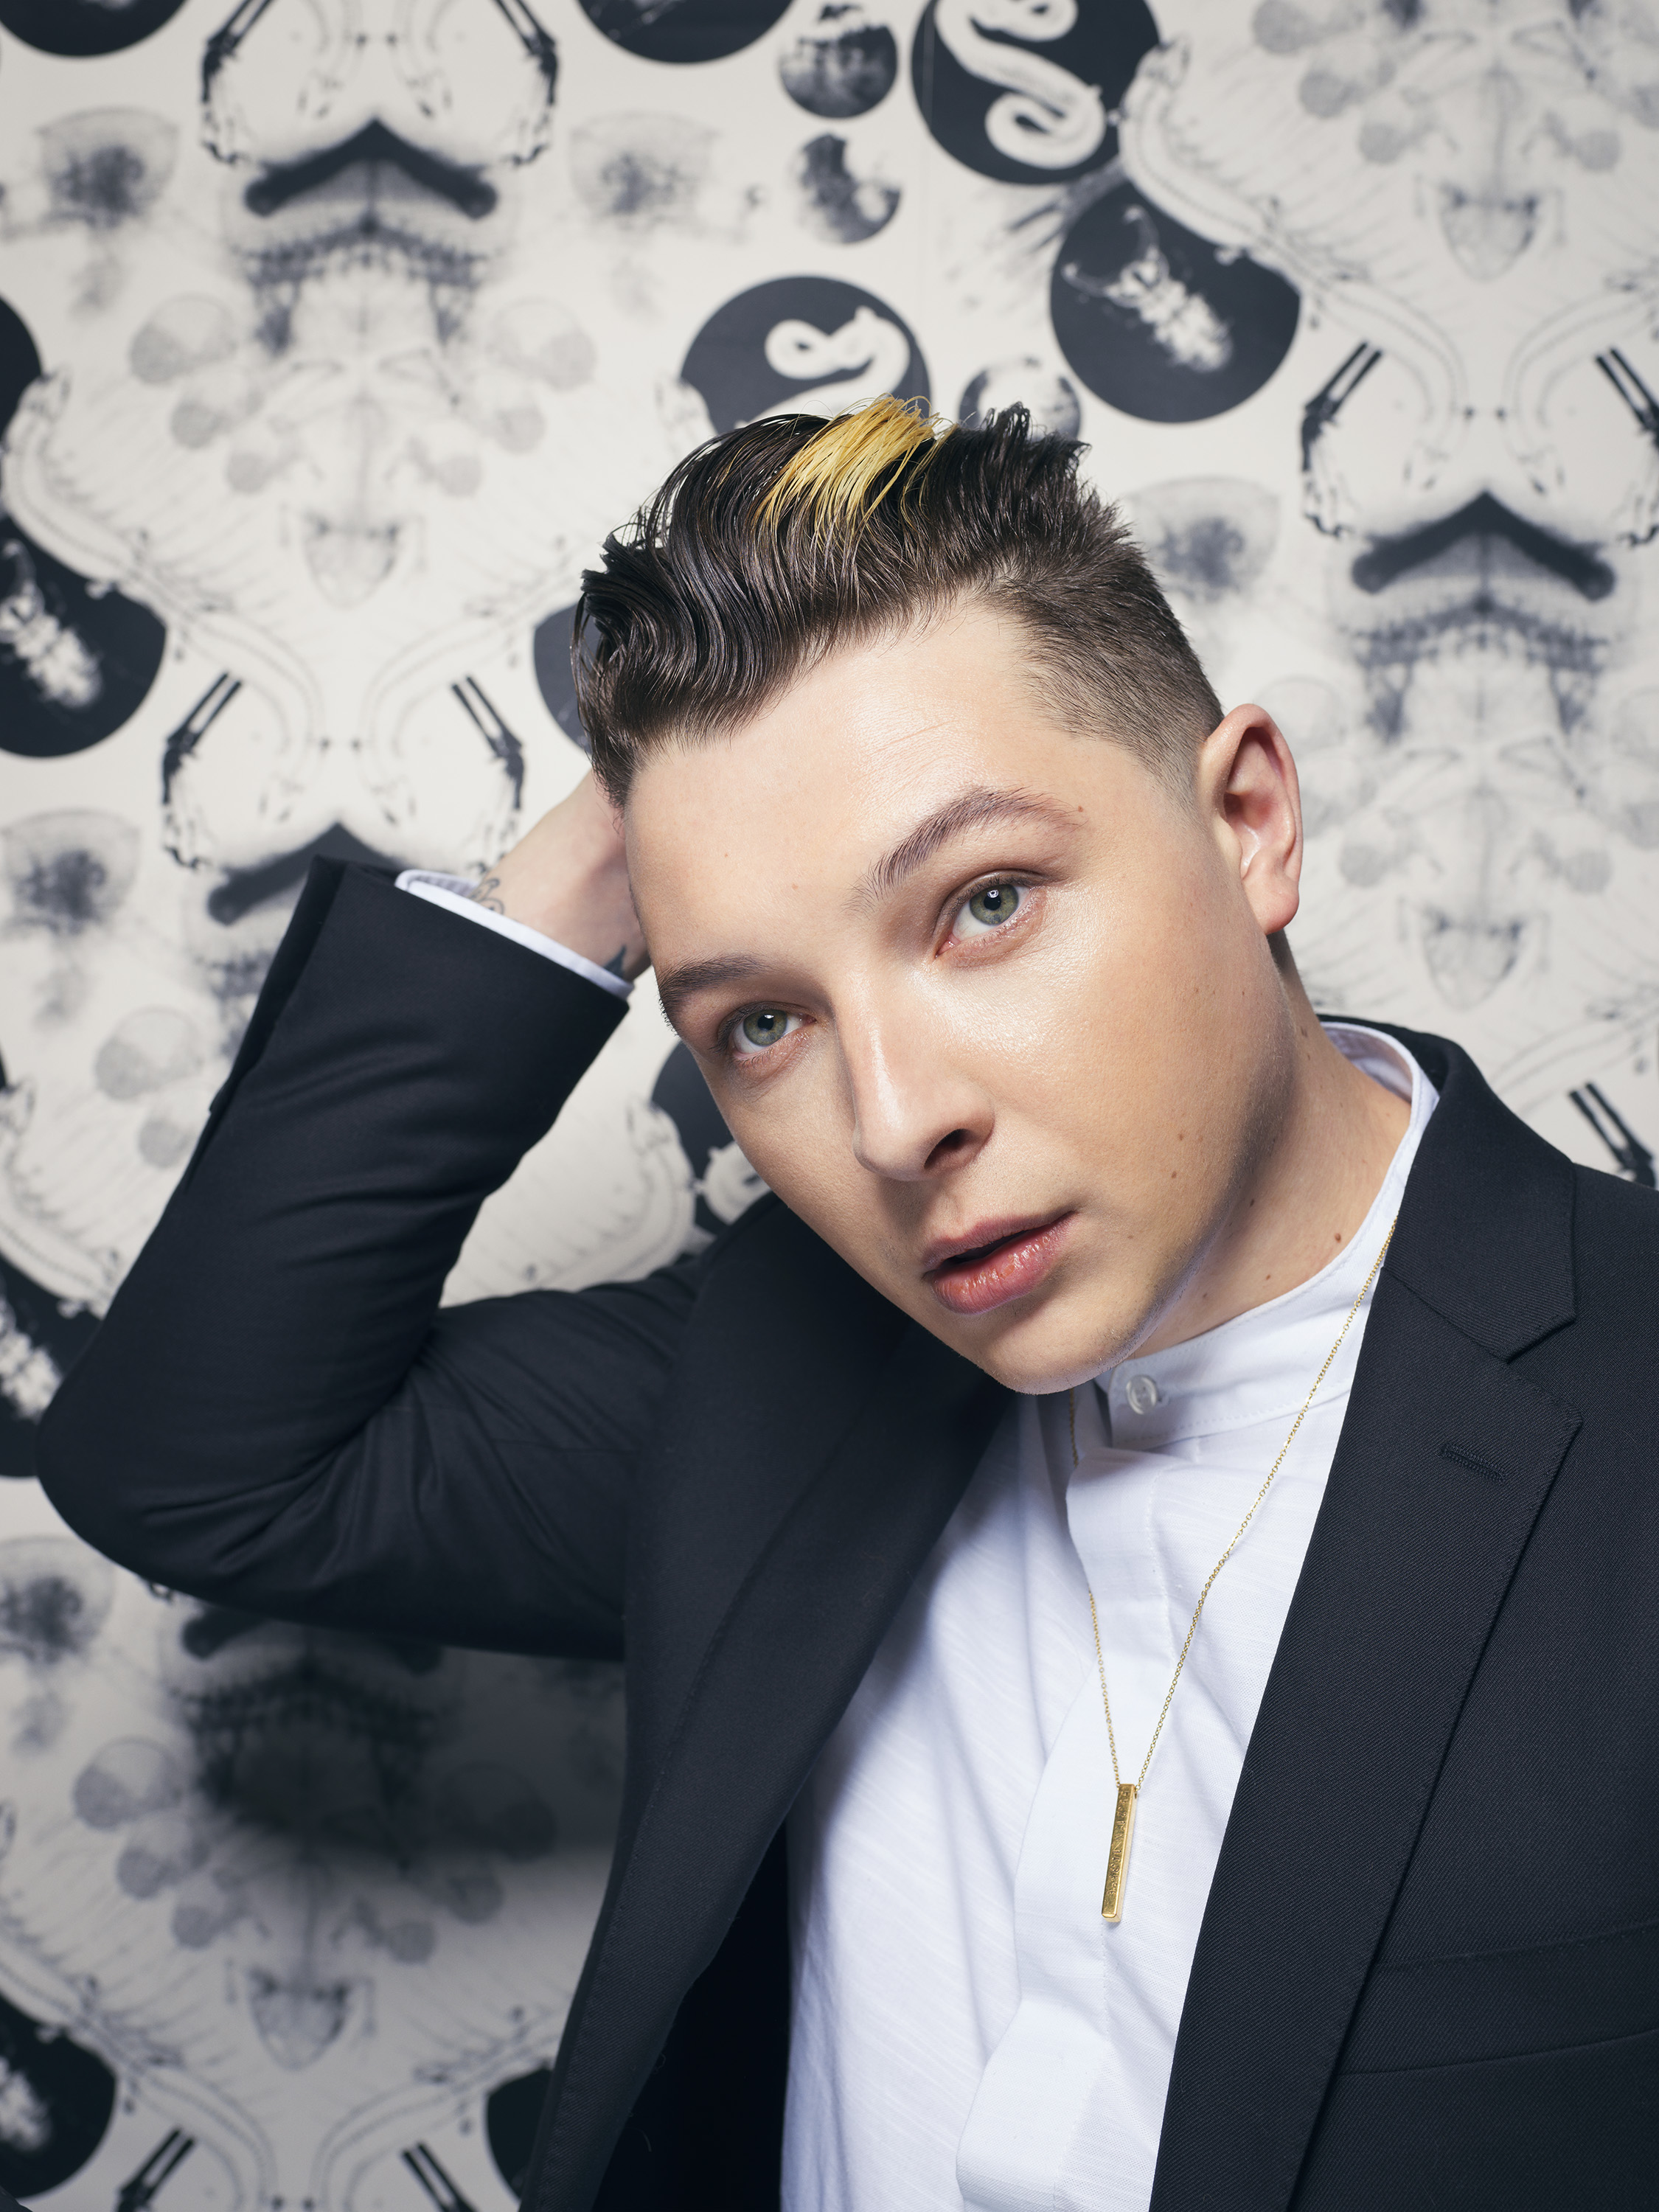 John Newman for Euphoria. The skin on the lad! Shot on a Hasselblad H6D-100c with a 100mm lens and some gorgeous lighting from James Hole, all blemishes should be hyper visible but oh no. He had some grooming from Madeleine Feeney and a grading by Ryan Tehee which is fair enough but hot dang the man has the skin of a new born. Is that weird? Hopefully not.